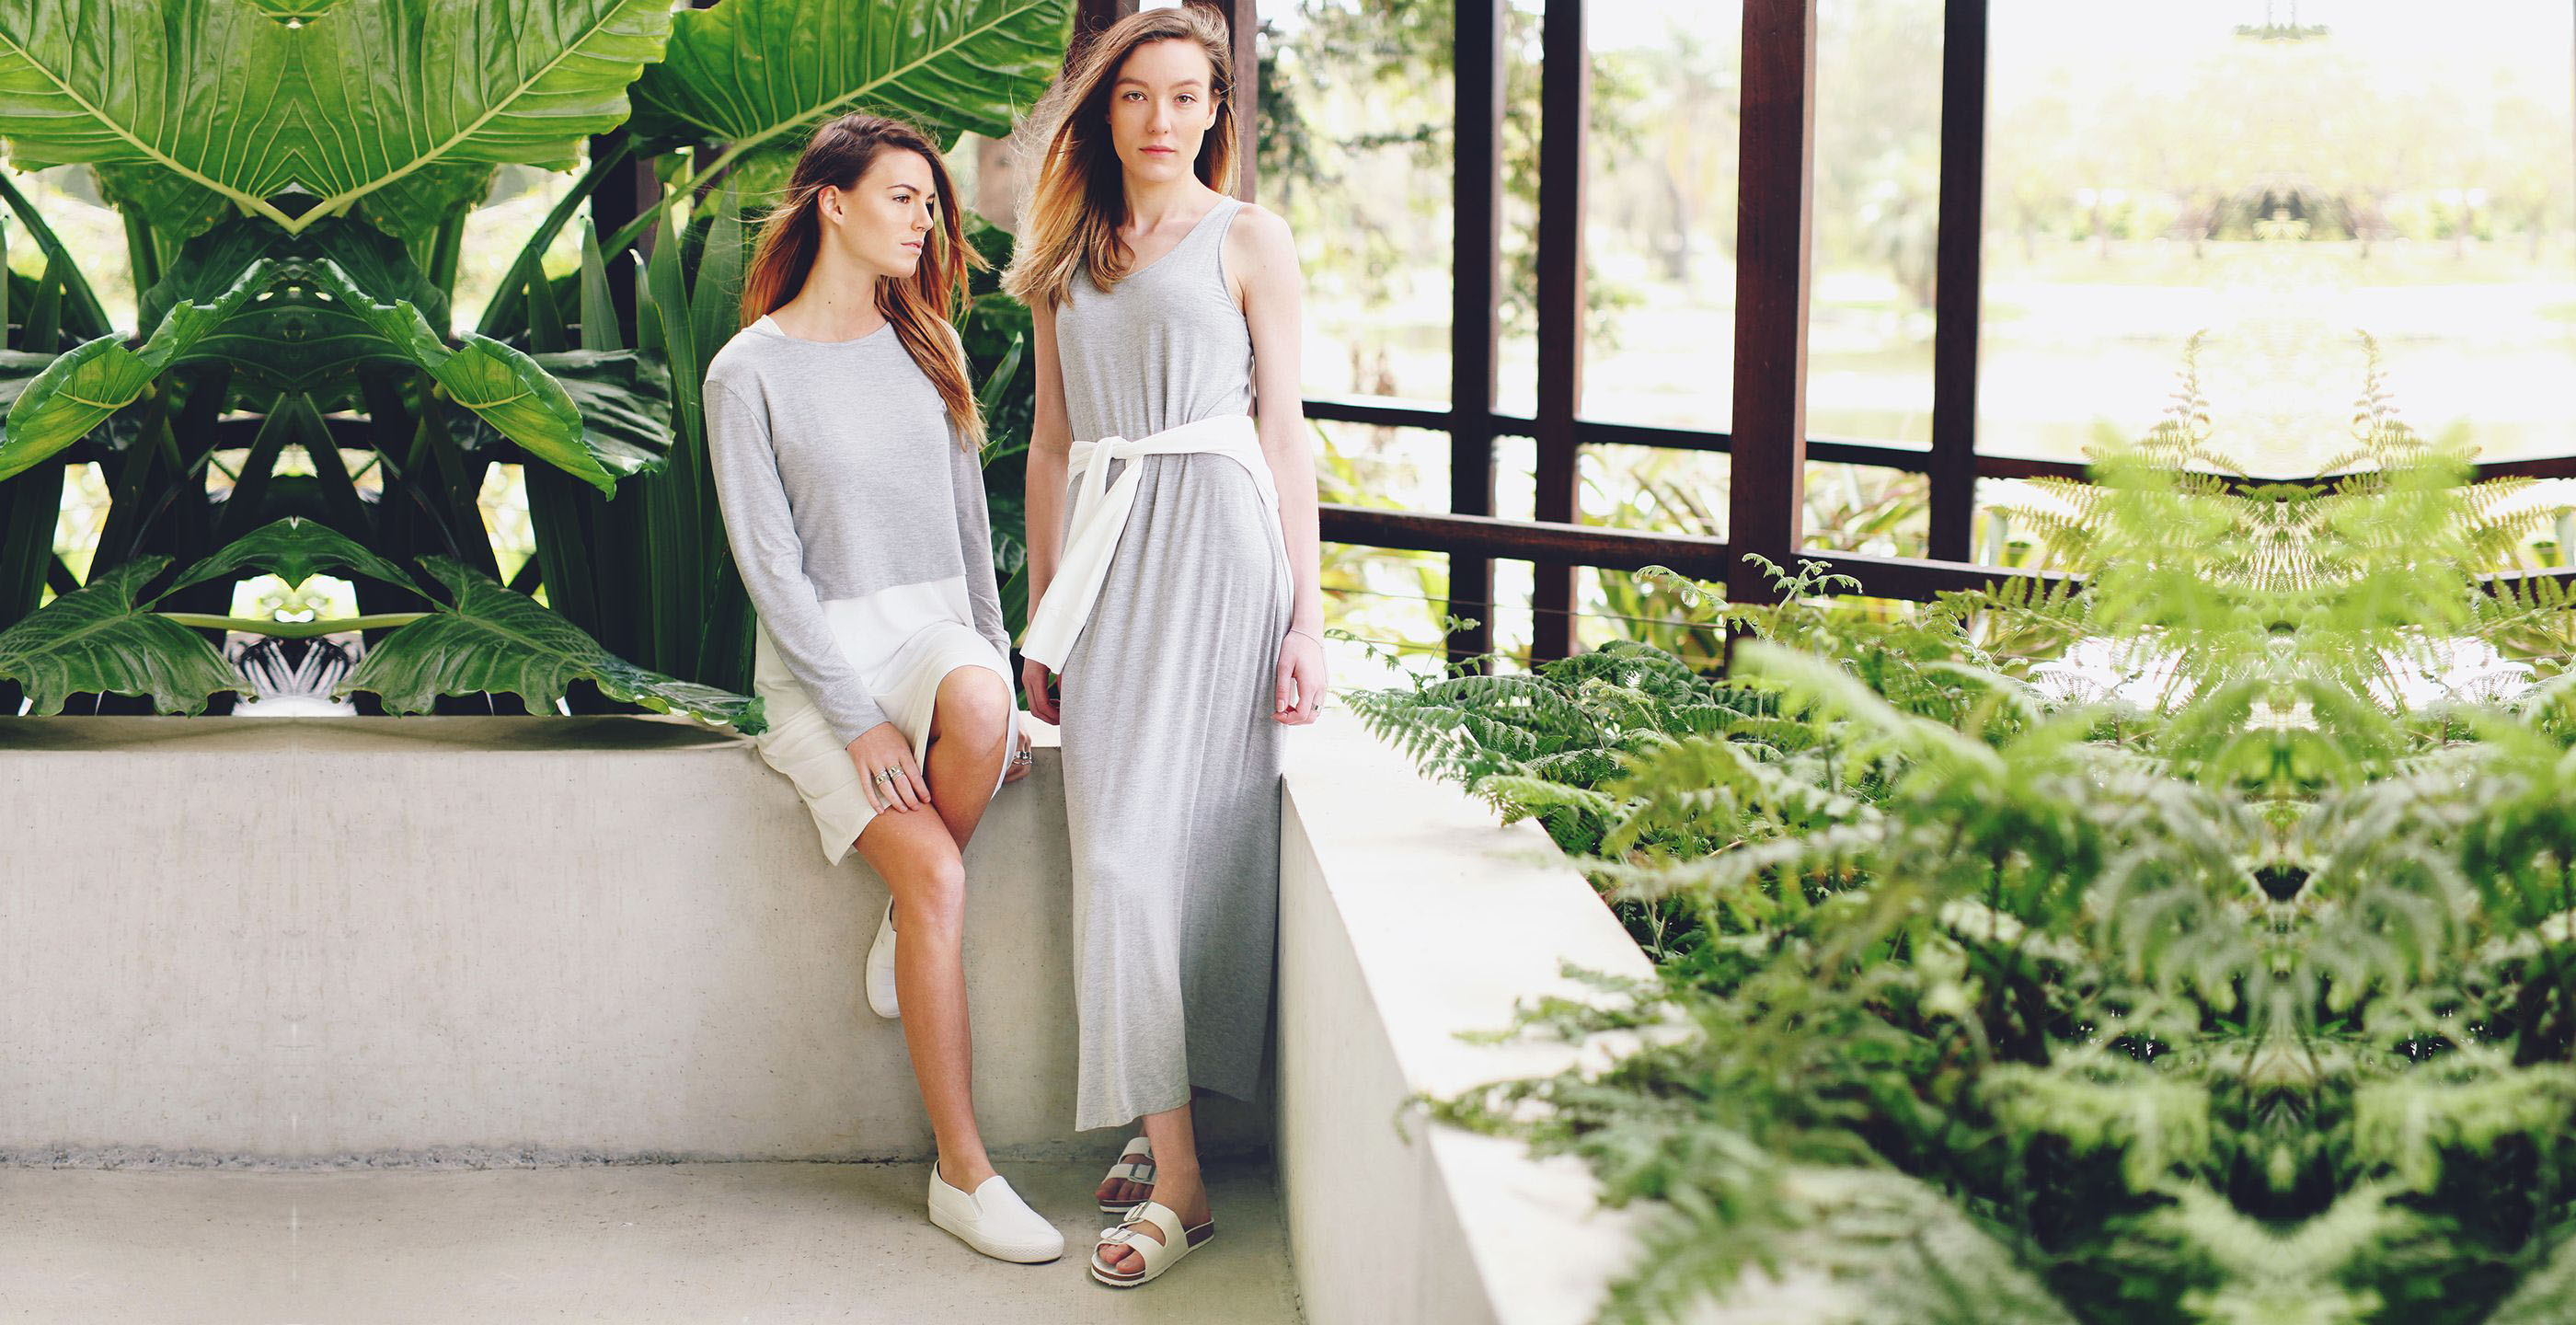 The-Great-Beyond-Bamboo-Clothing-Australian-ethical-fashion